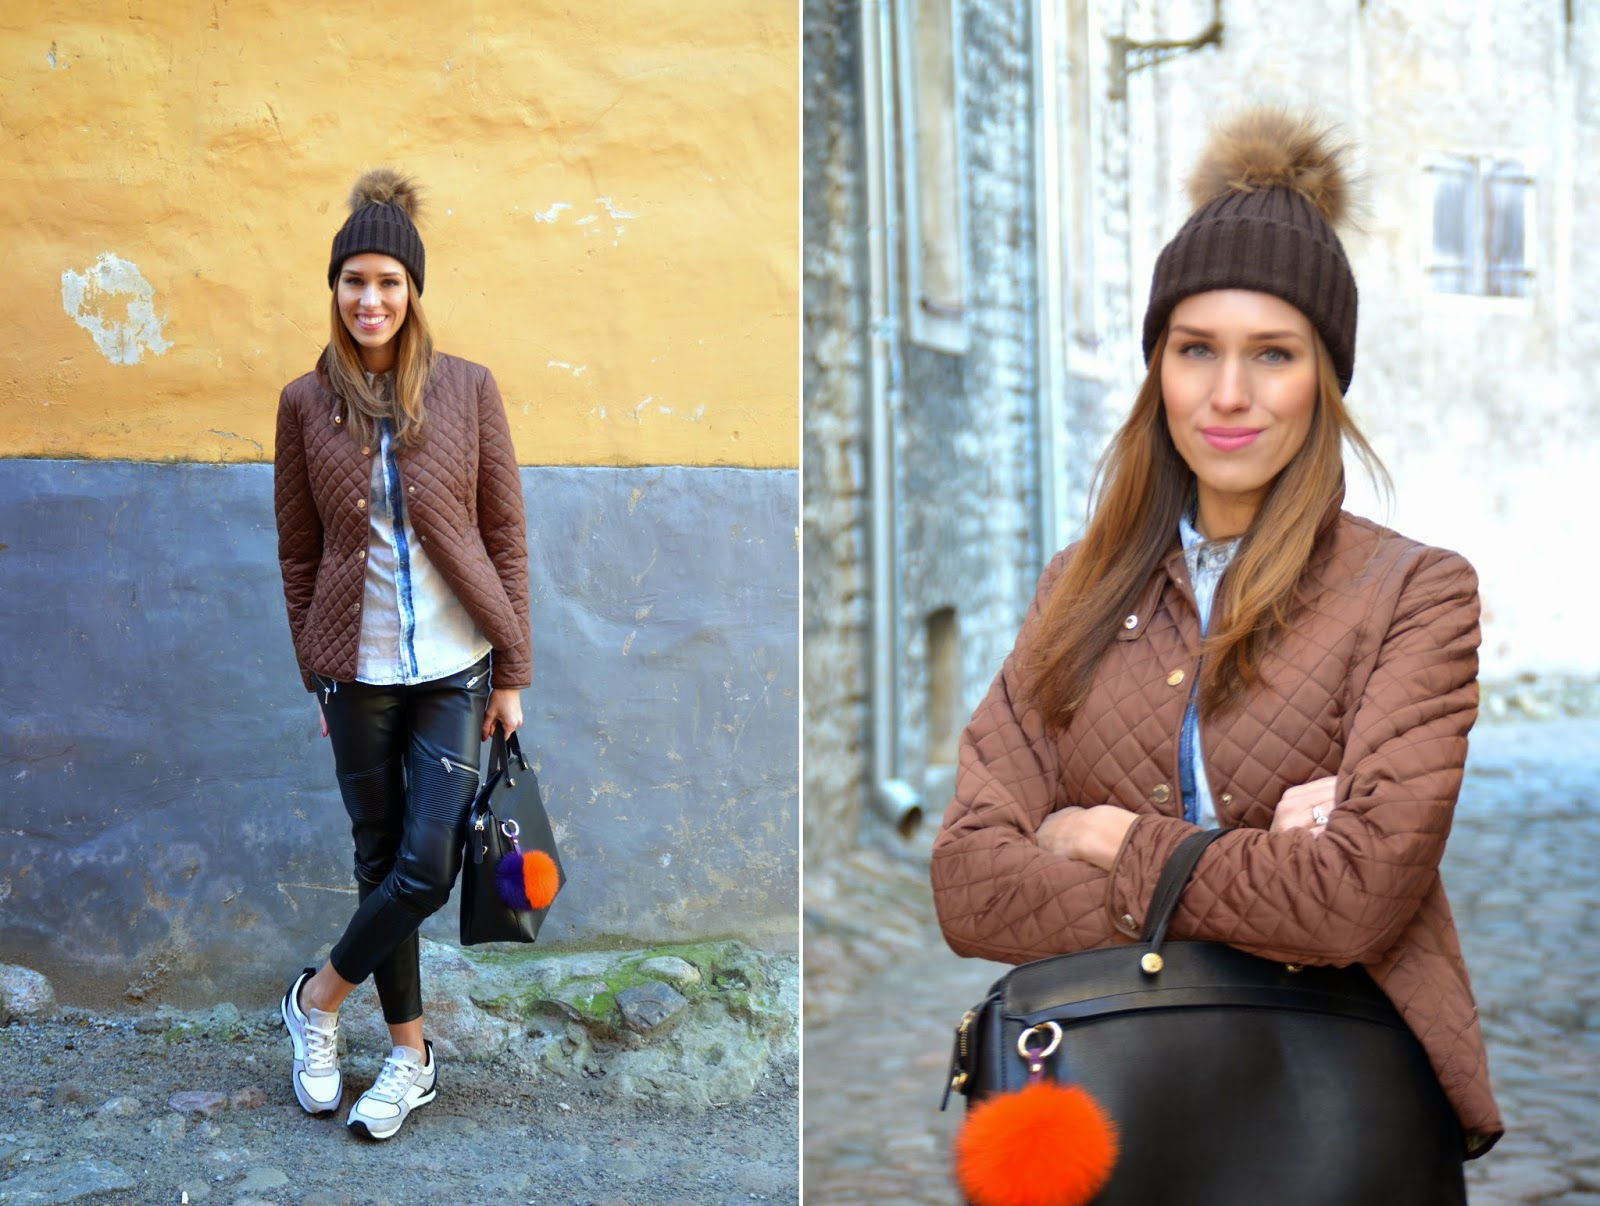 pom-pom-hat-fur-bag-charm-key-ring-leather-pants-sneakers-casual-outfit kristjaana mere